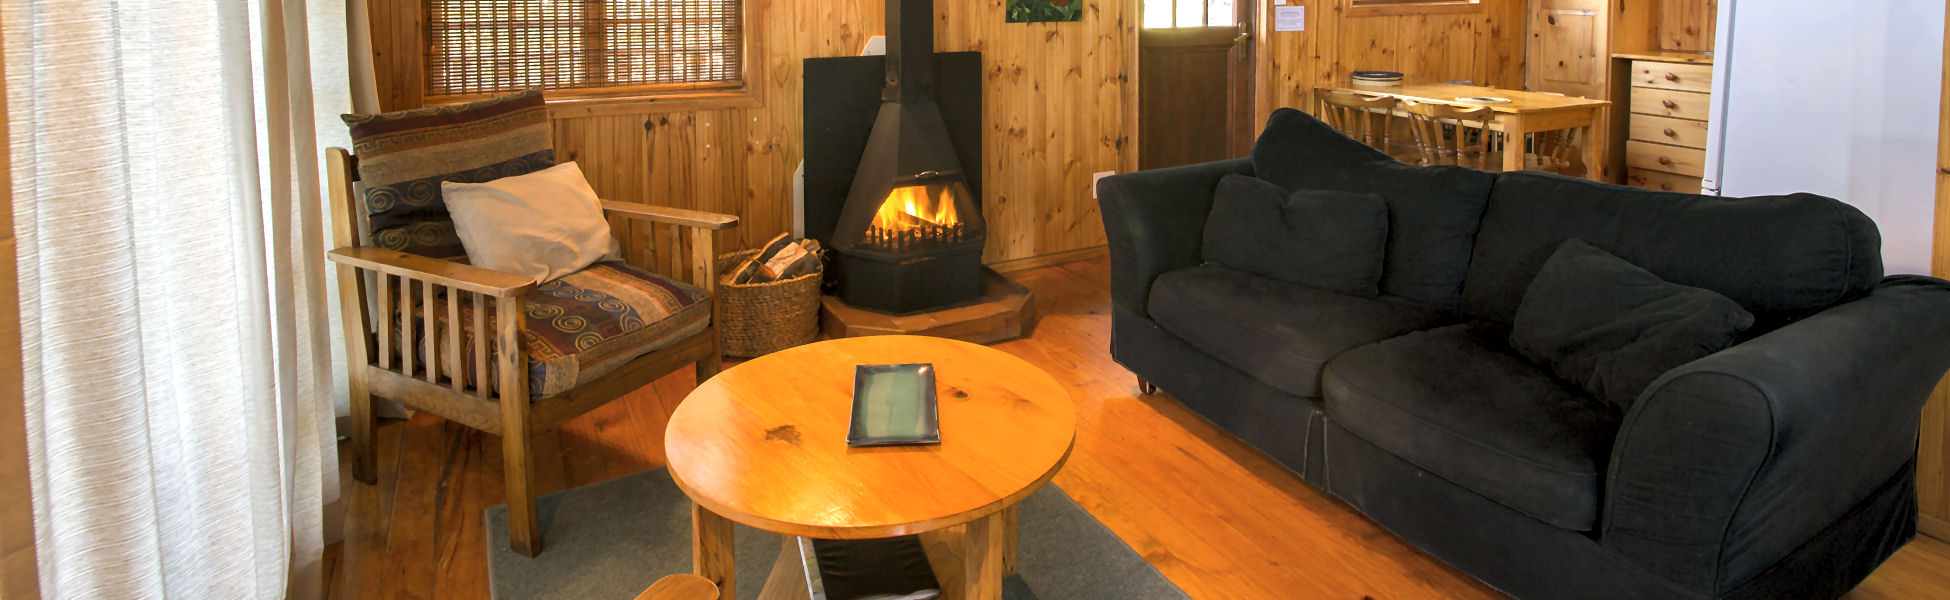 Knysna Self-Catering Chalet